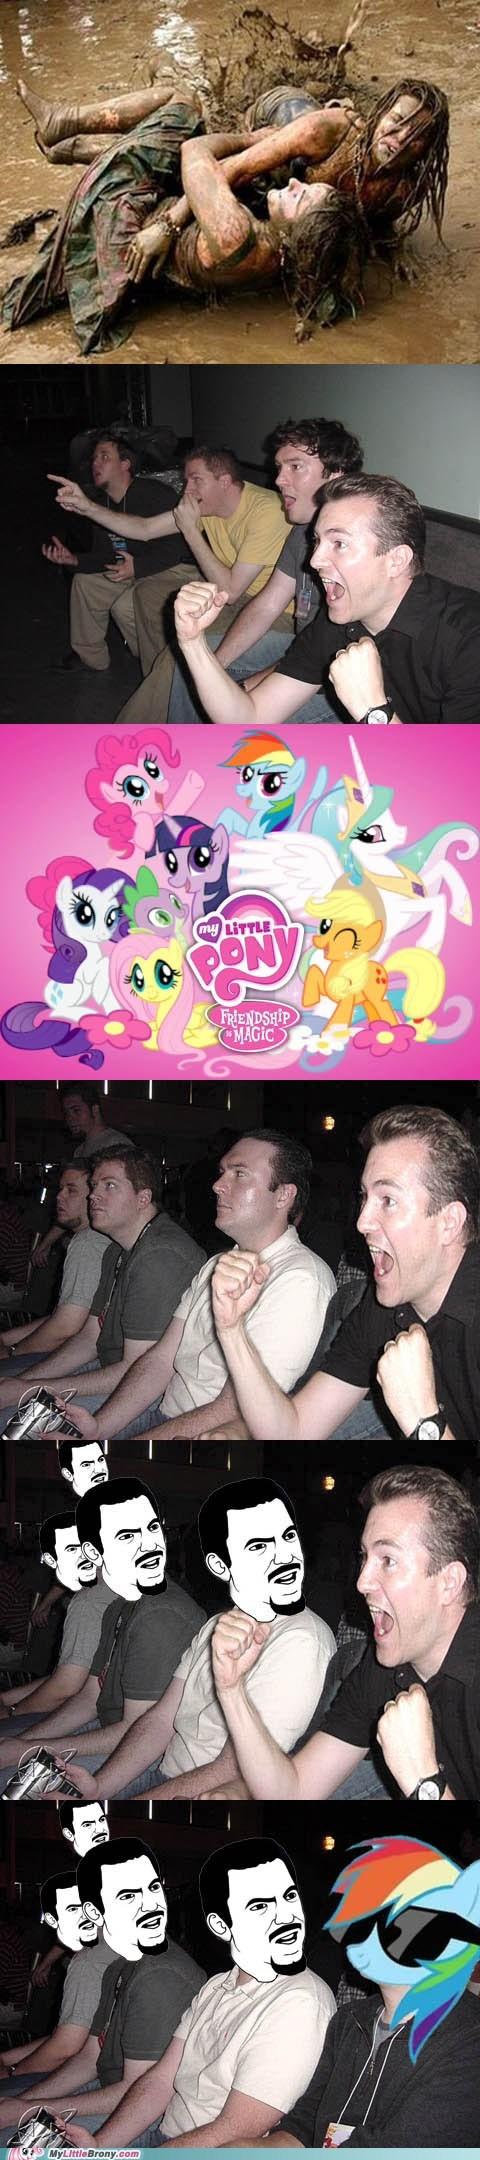 Bronies comics Deal With It rainbow dash reaction guys - 5779026176